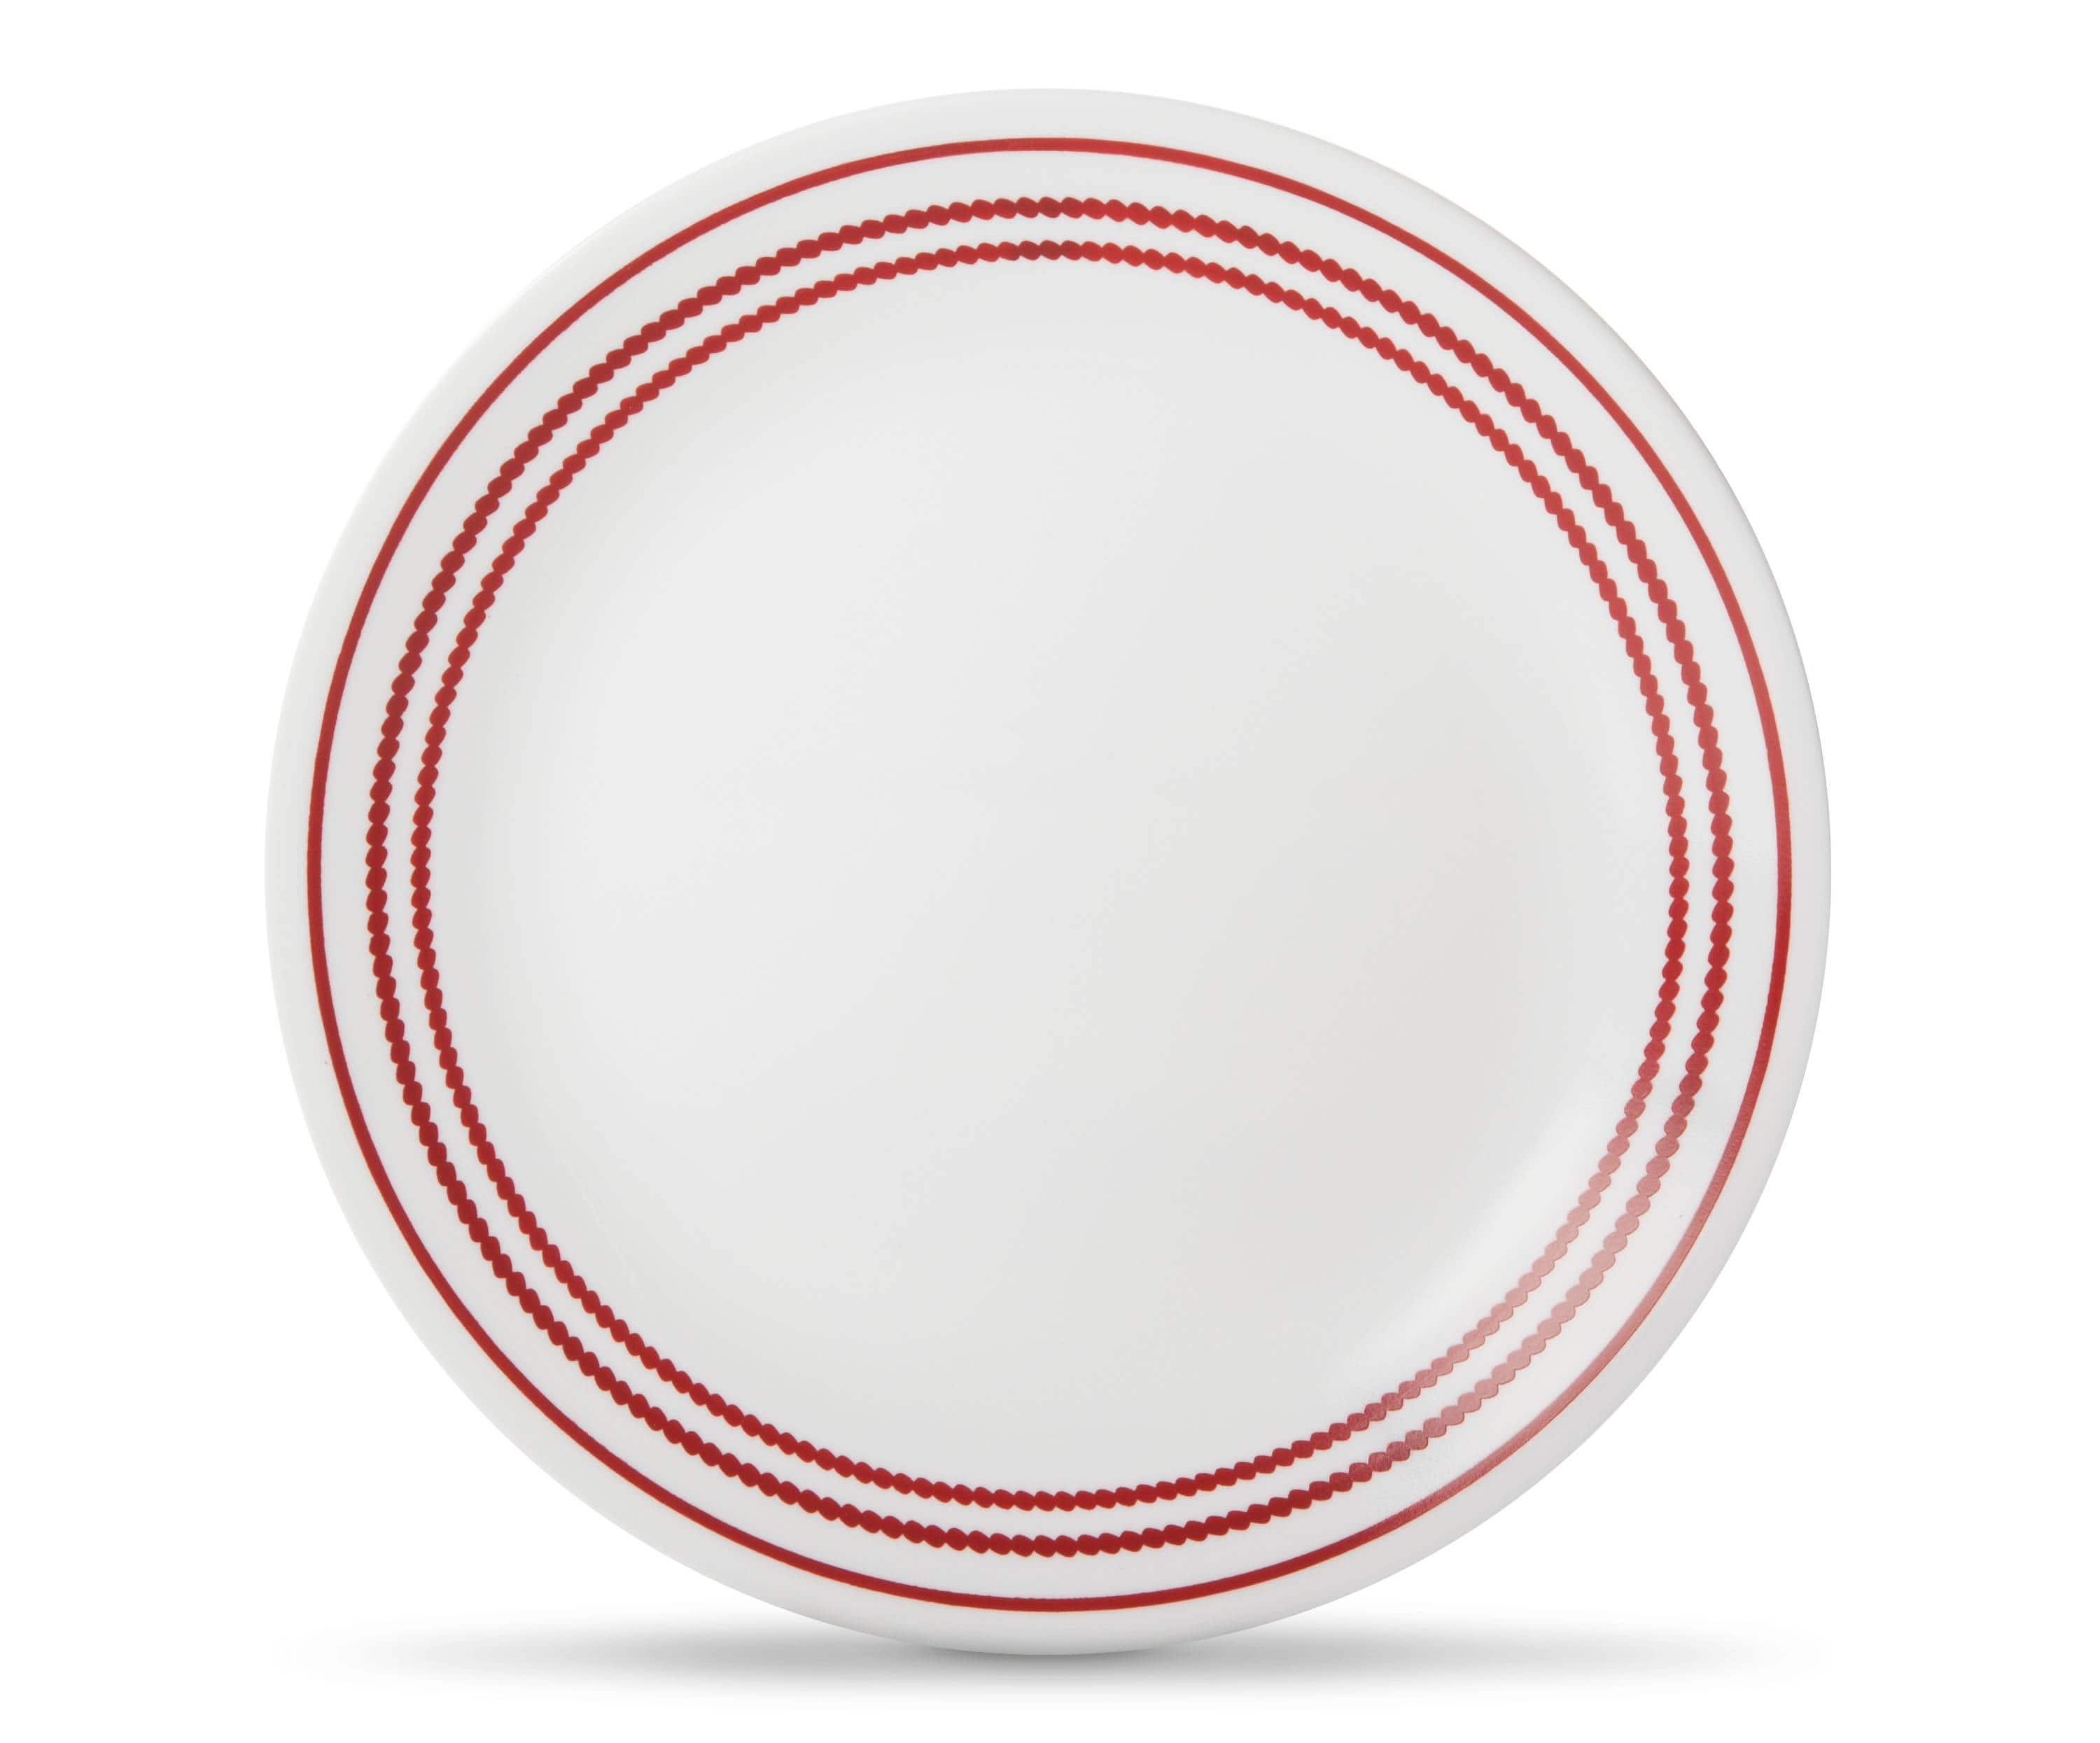 Corelle Lunch Plates Set of 6 $9.99 Target.com FS + 5% off with Red Card